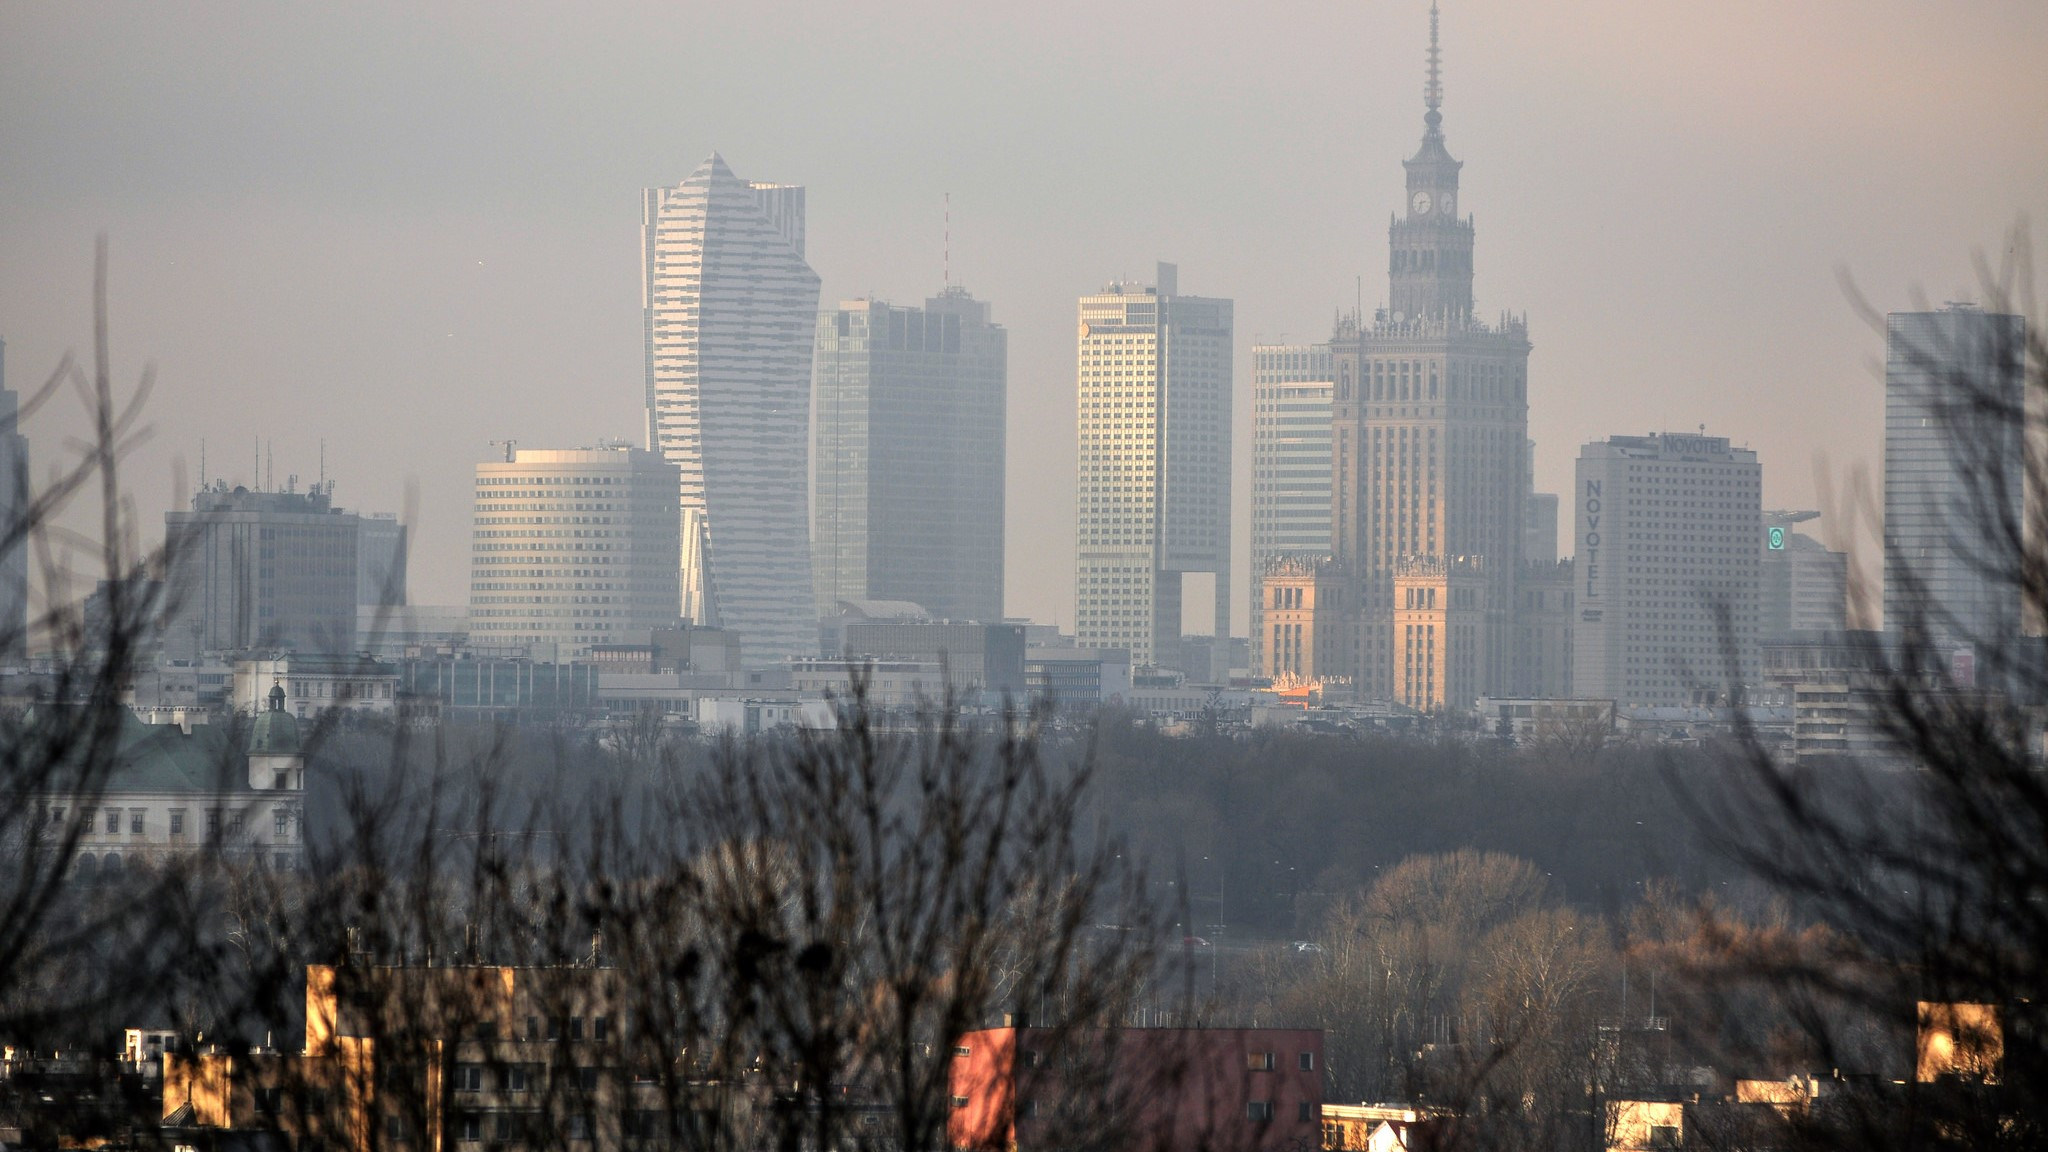 The Warsaw skyline under the smog